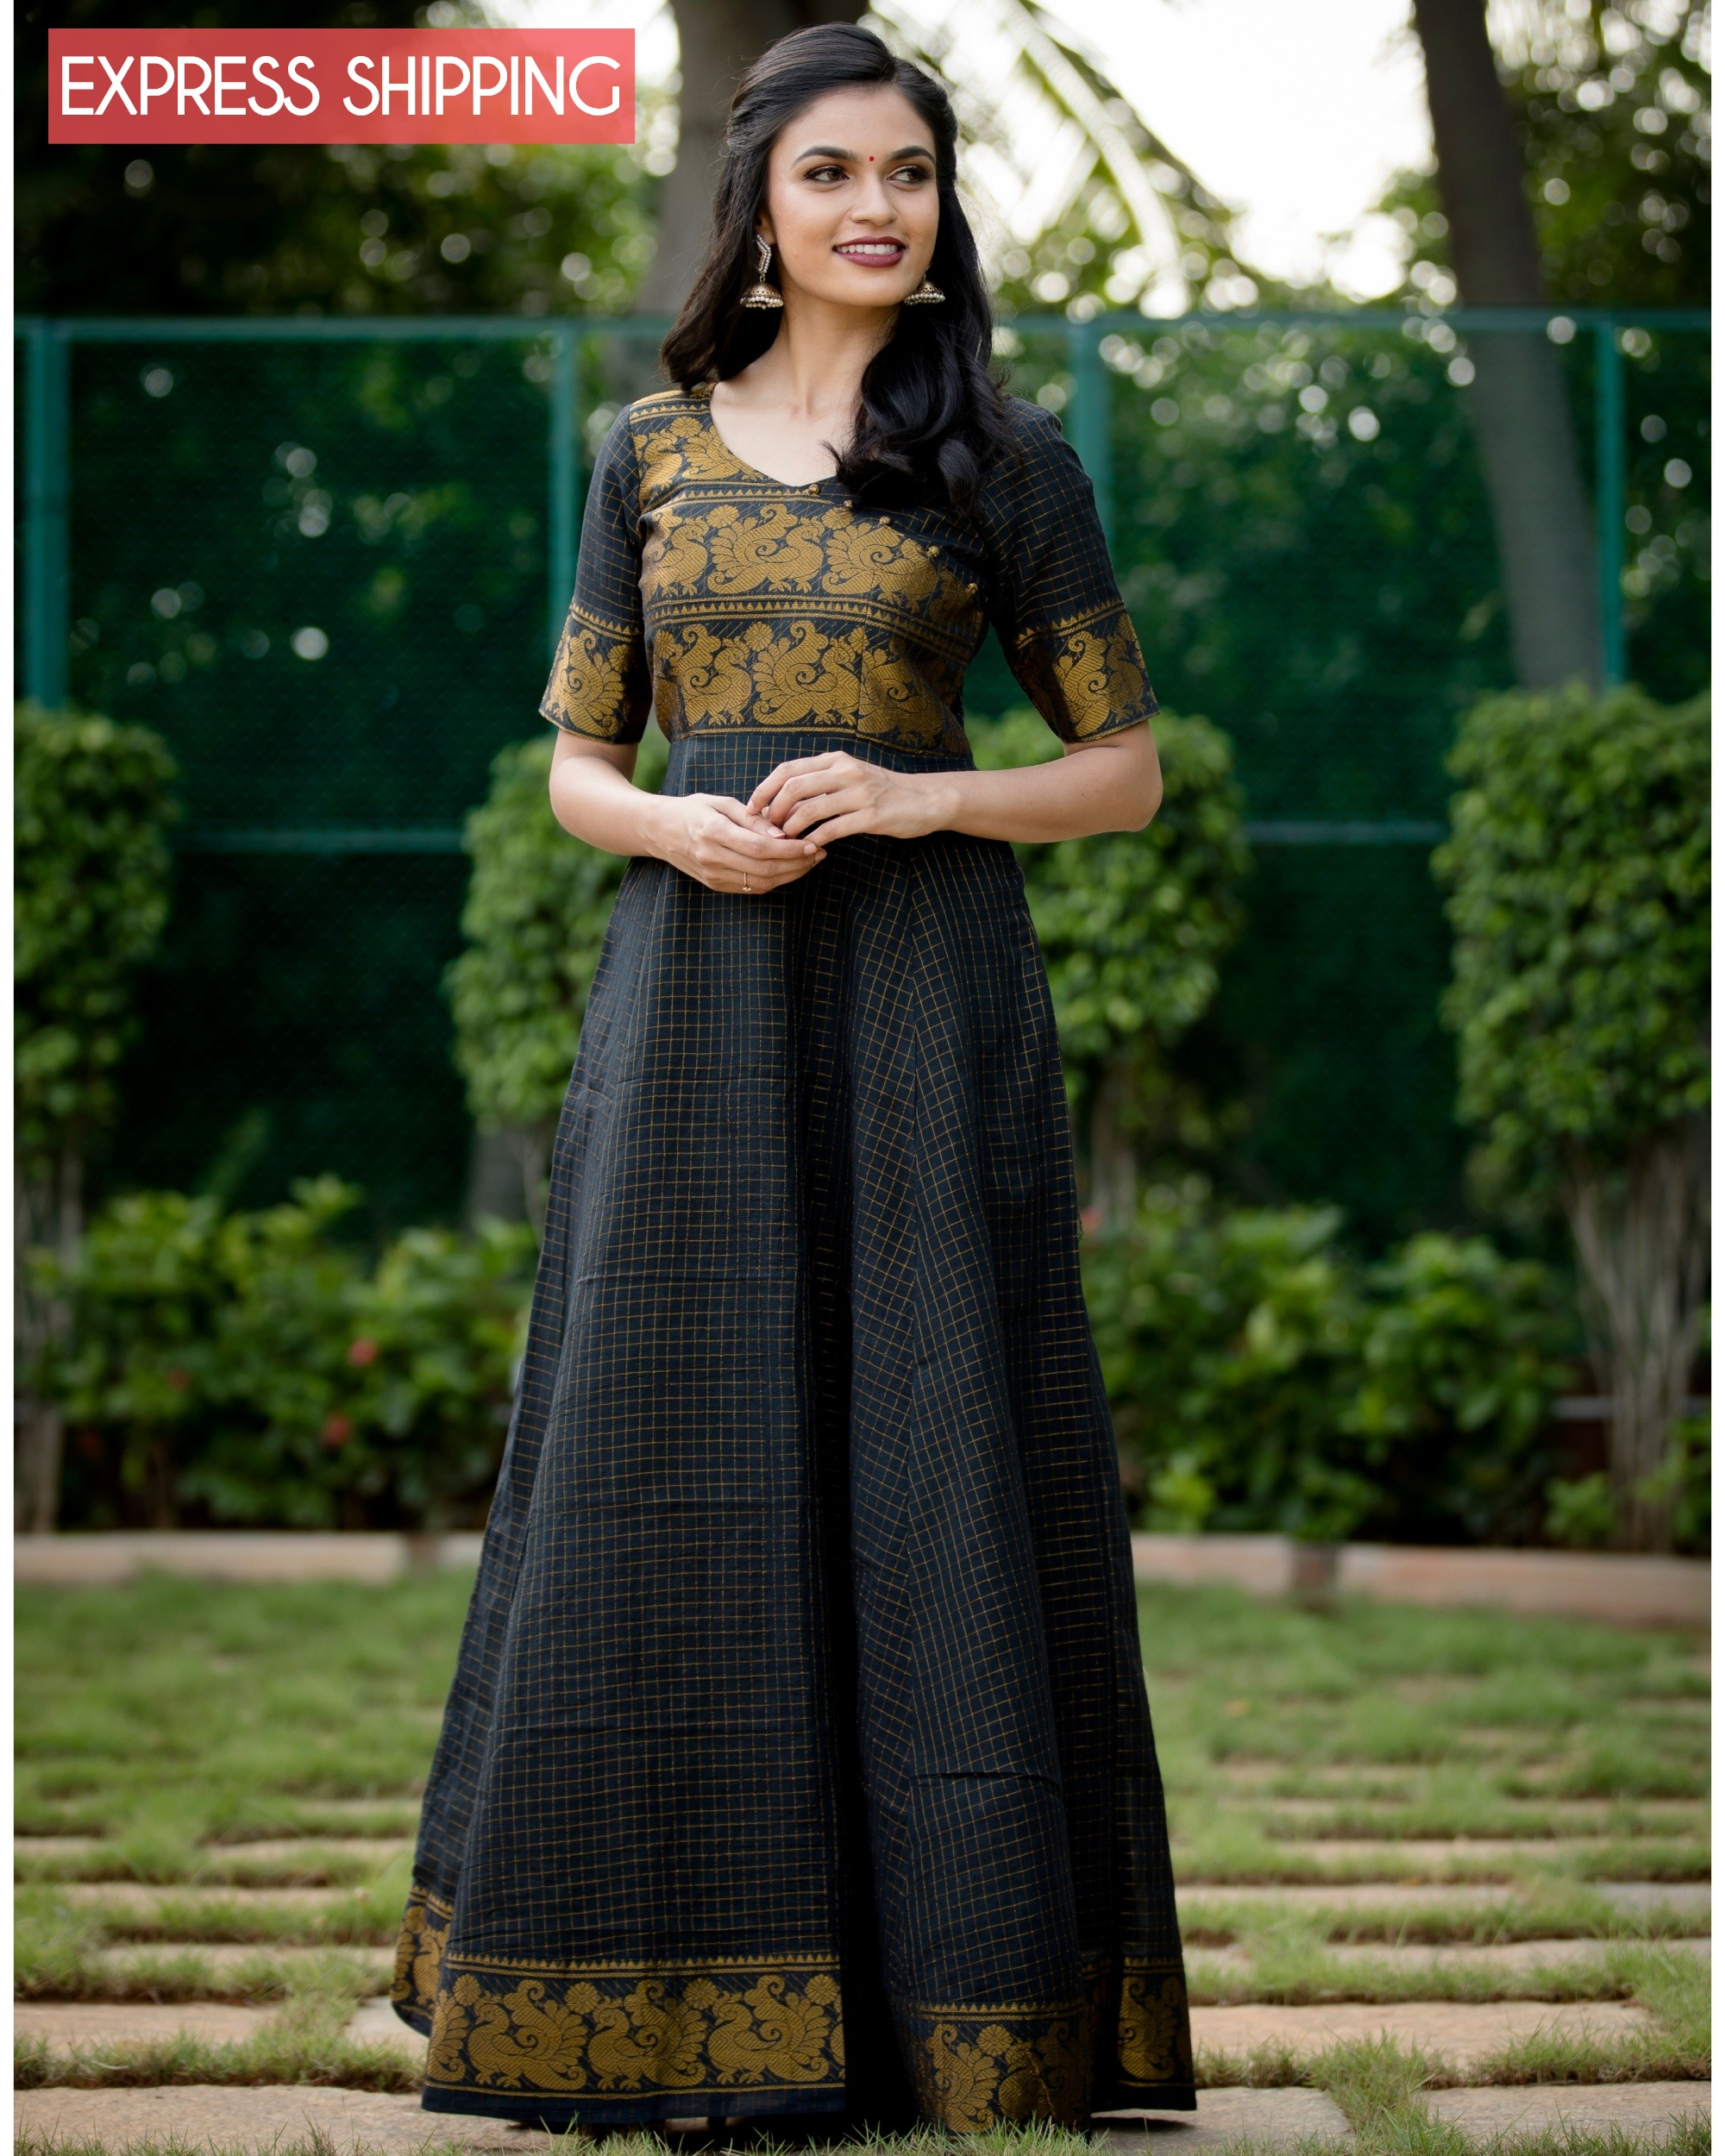 Black and gold madurai cotton maxi